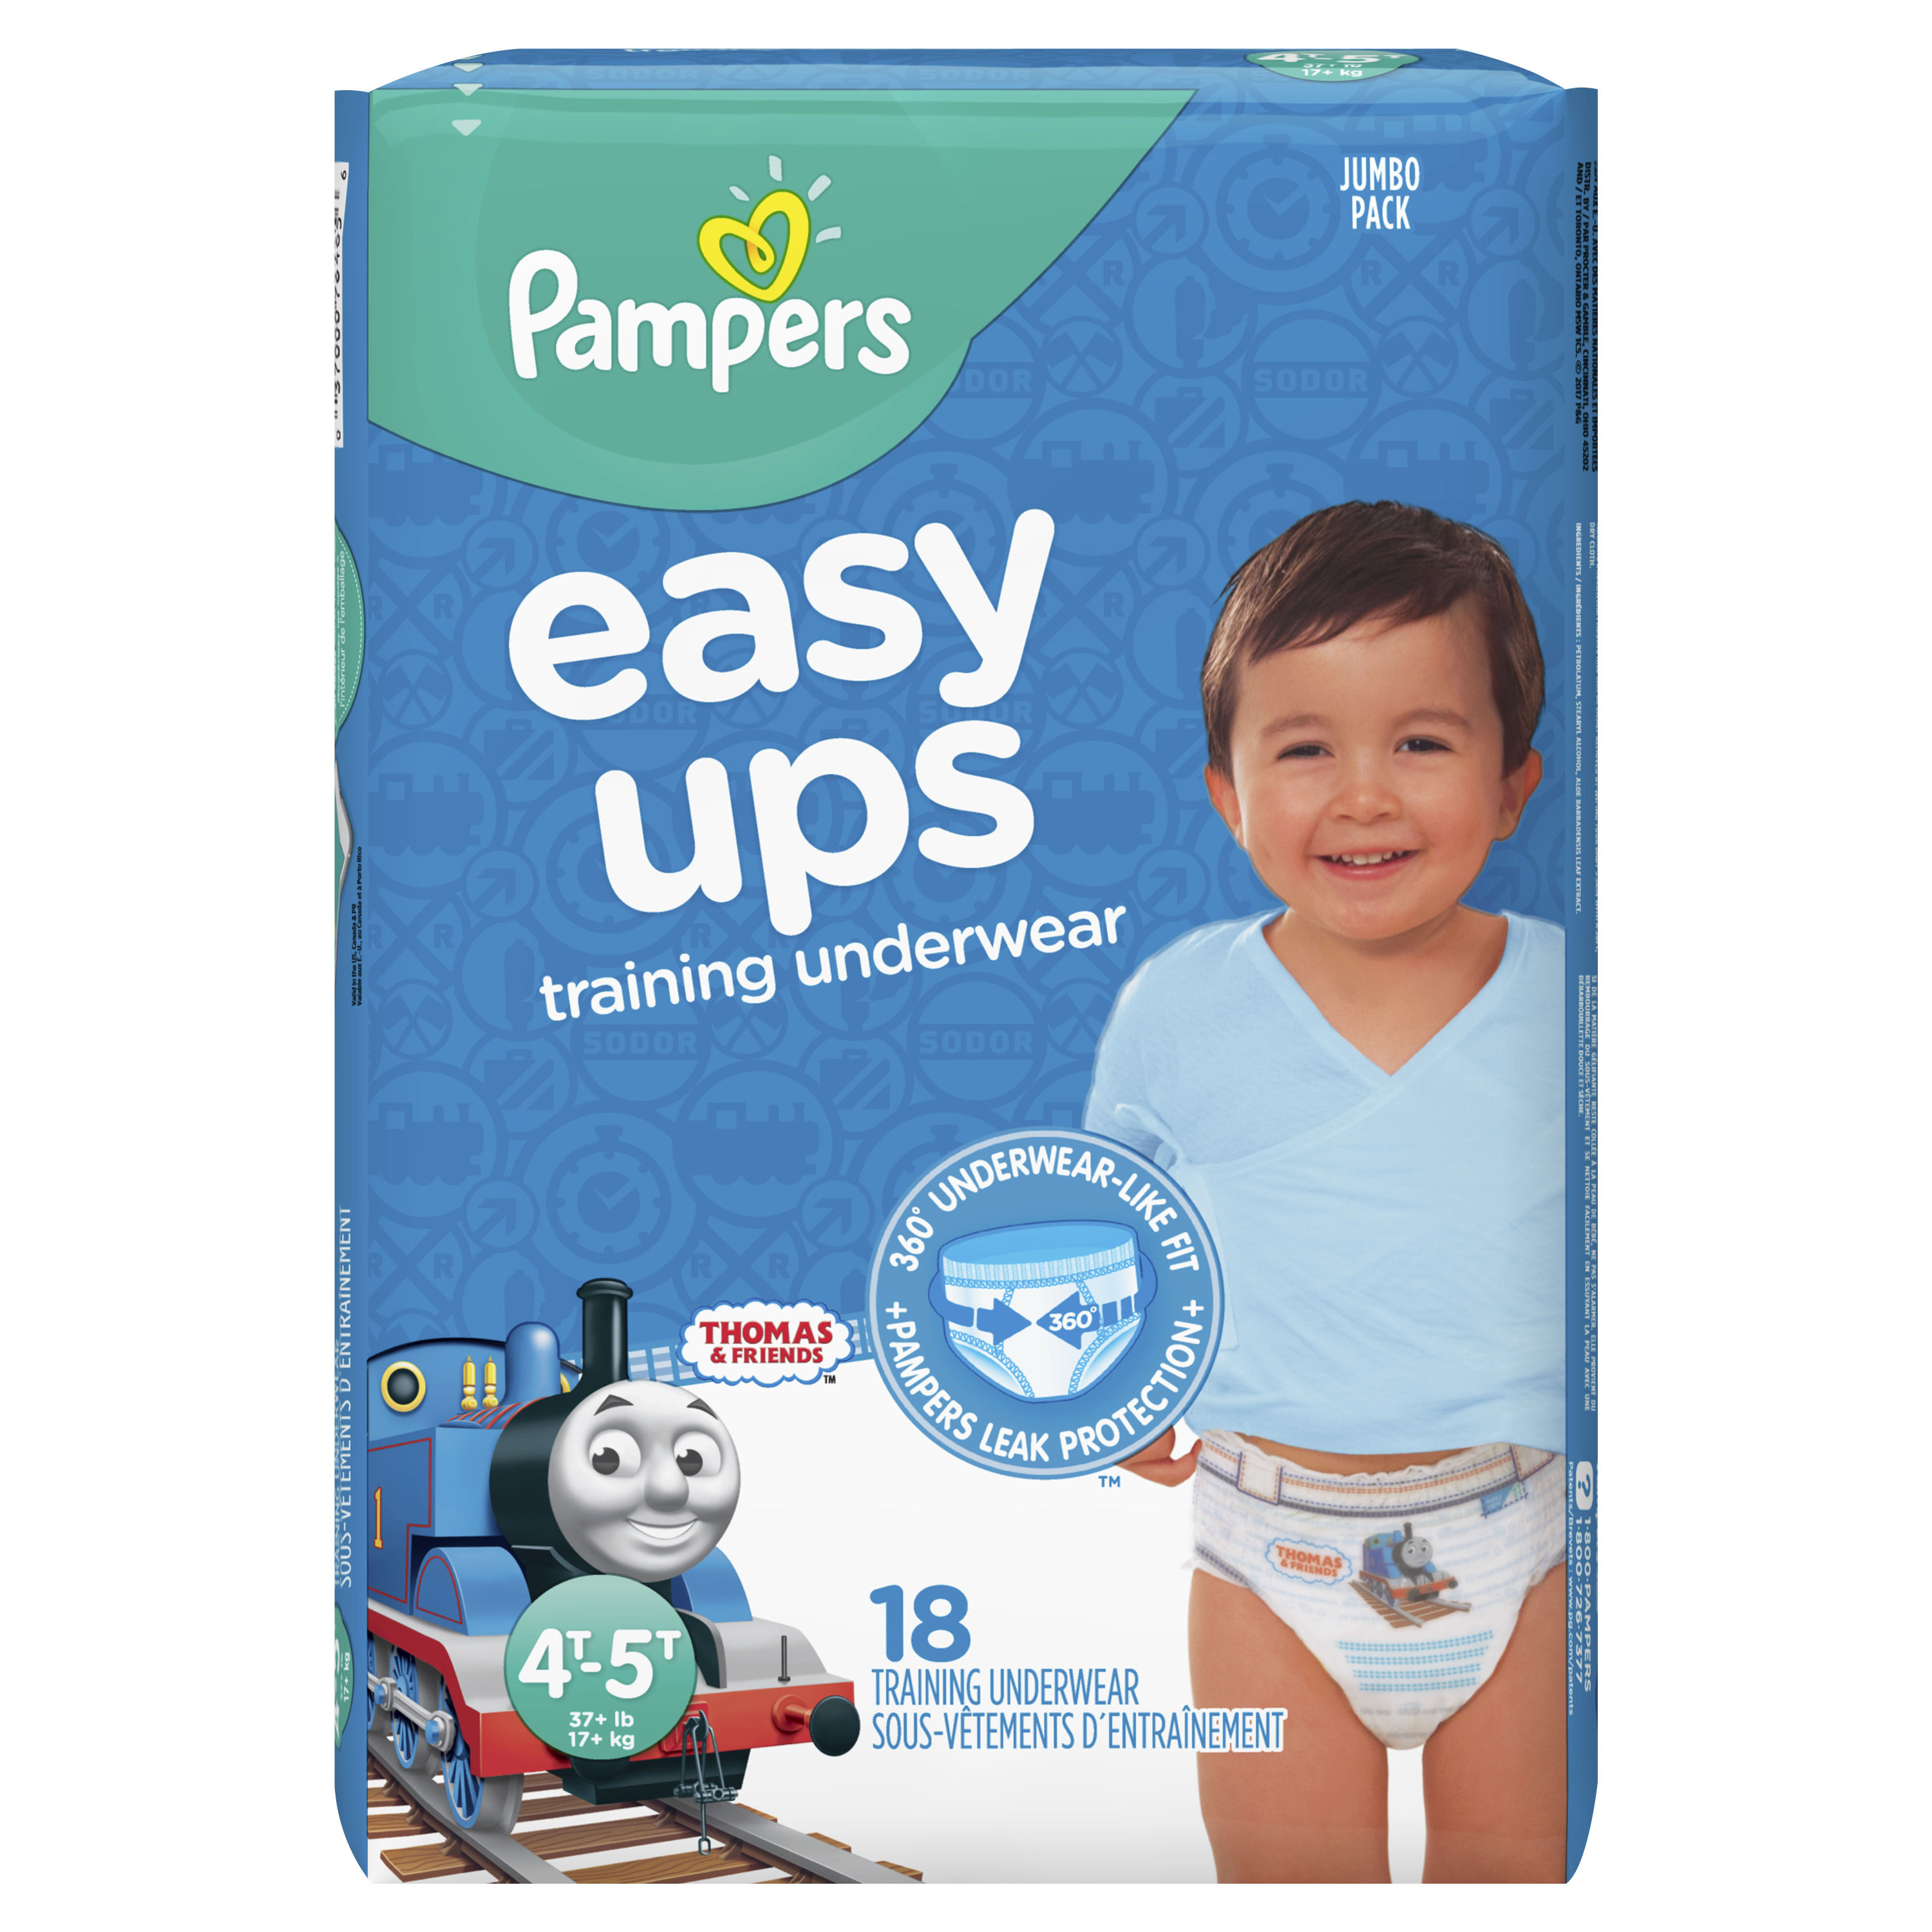 Pampers Easy Ups Training Underwear Boys Size 6 4T-5T 18 Count